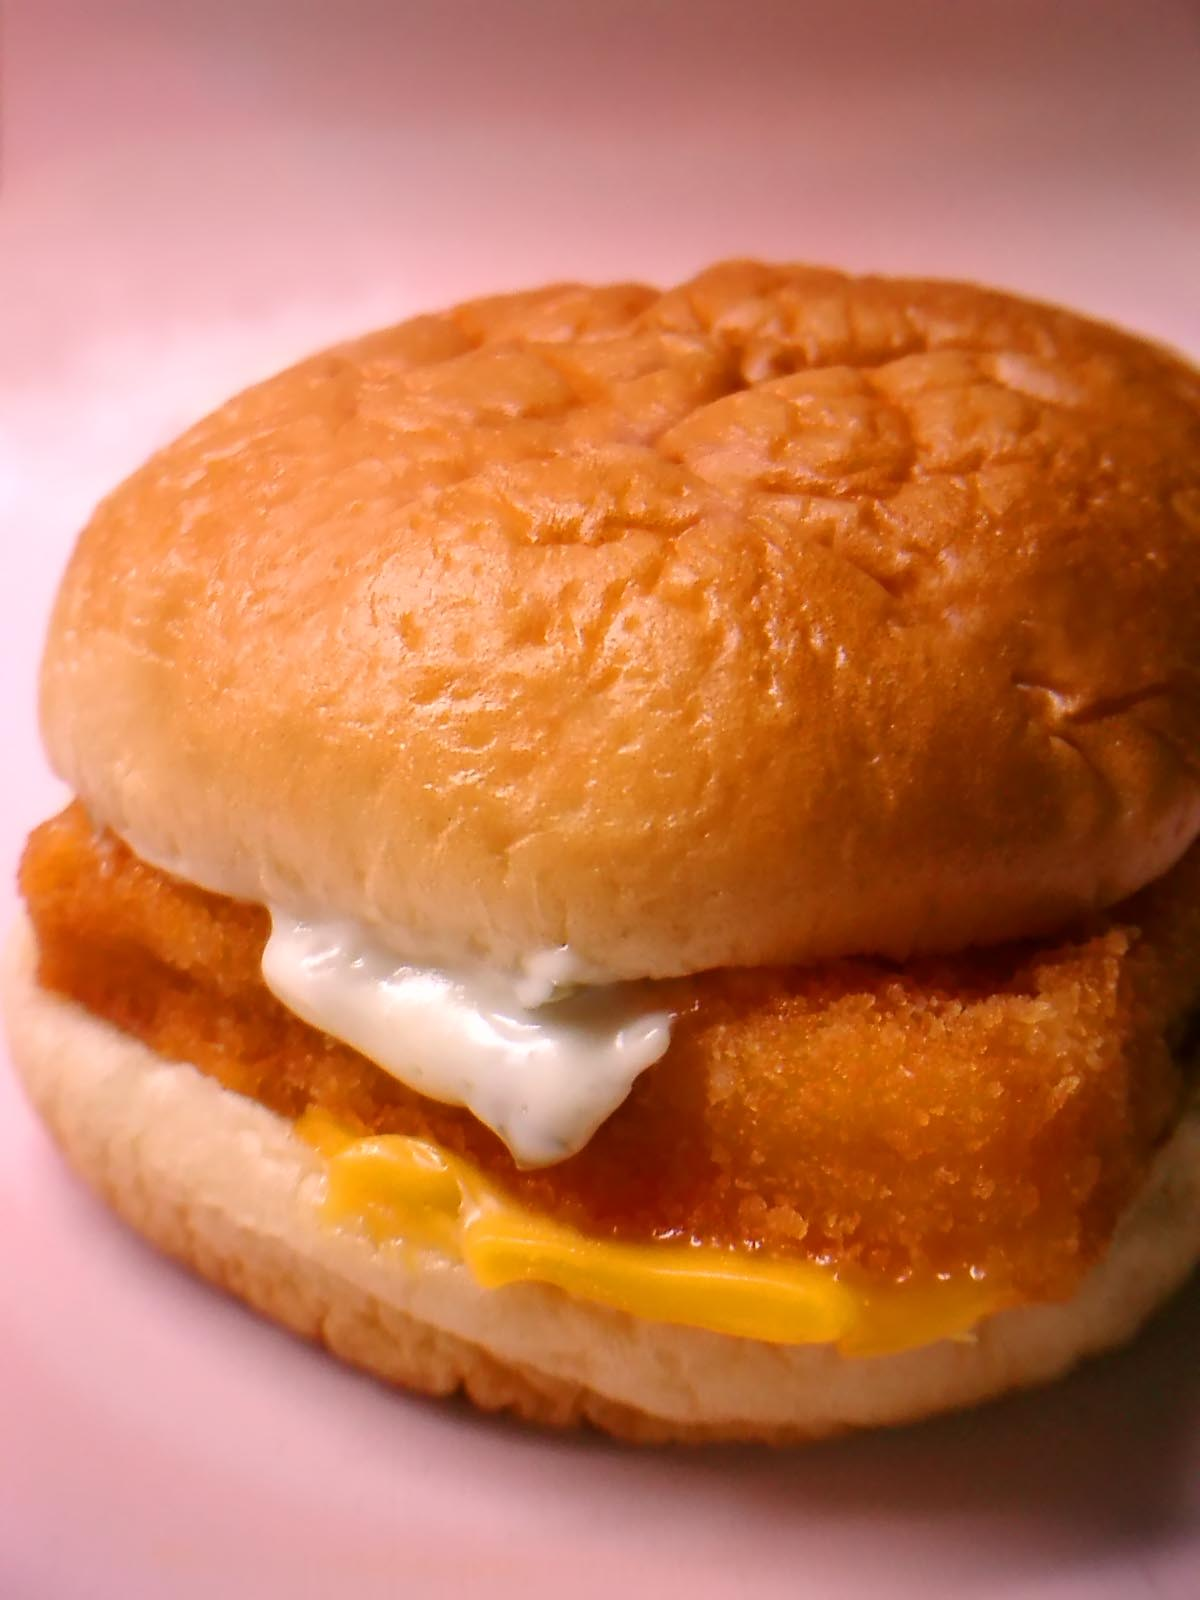 Filet o fish wikidata for Filet of fish